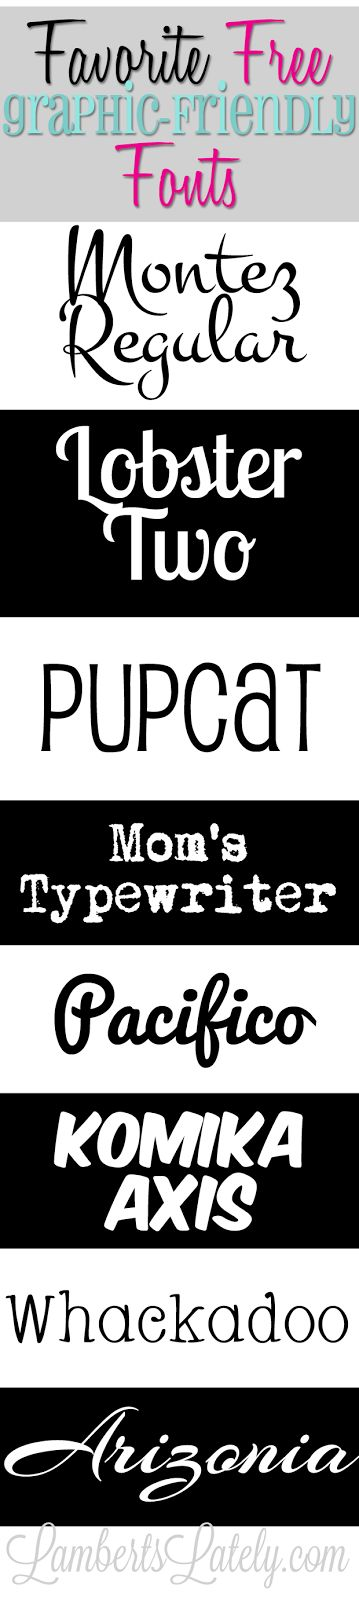 Great collection of free graphic-friendly fonts for bloggers. Perfect to use on Pinterest images!